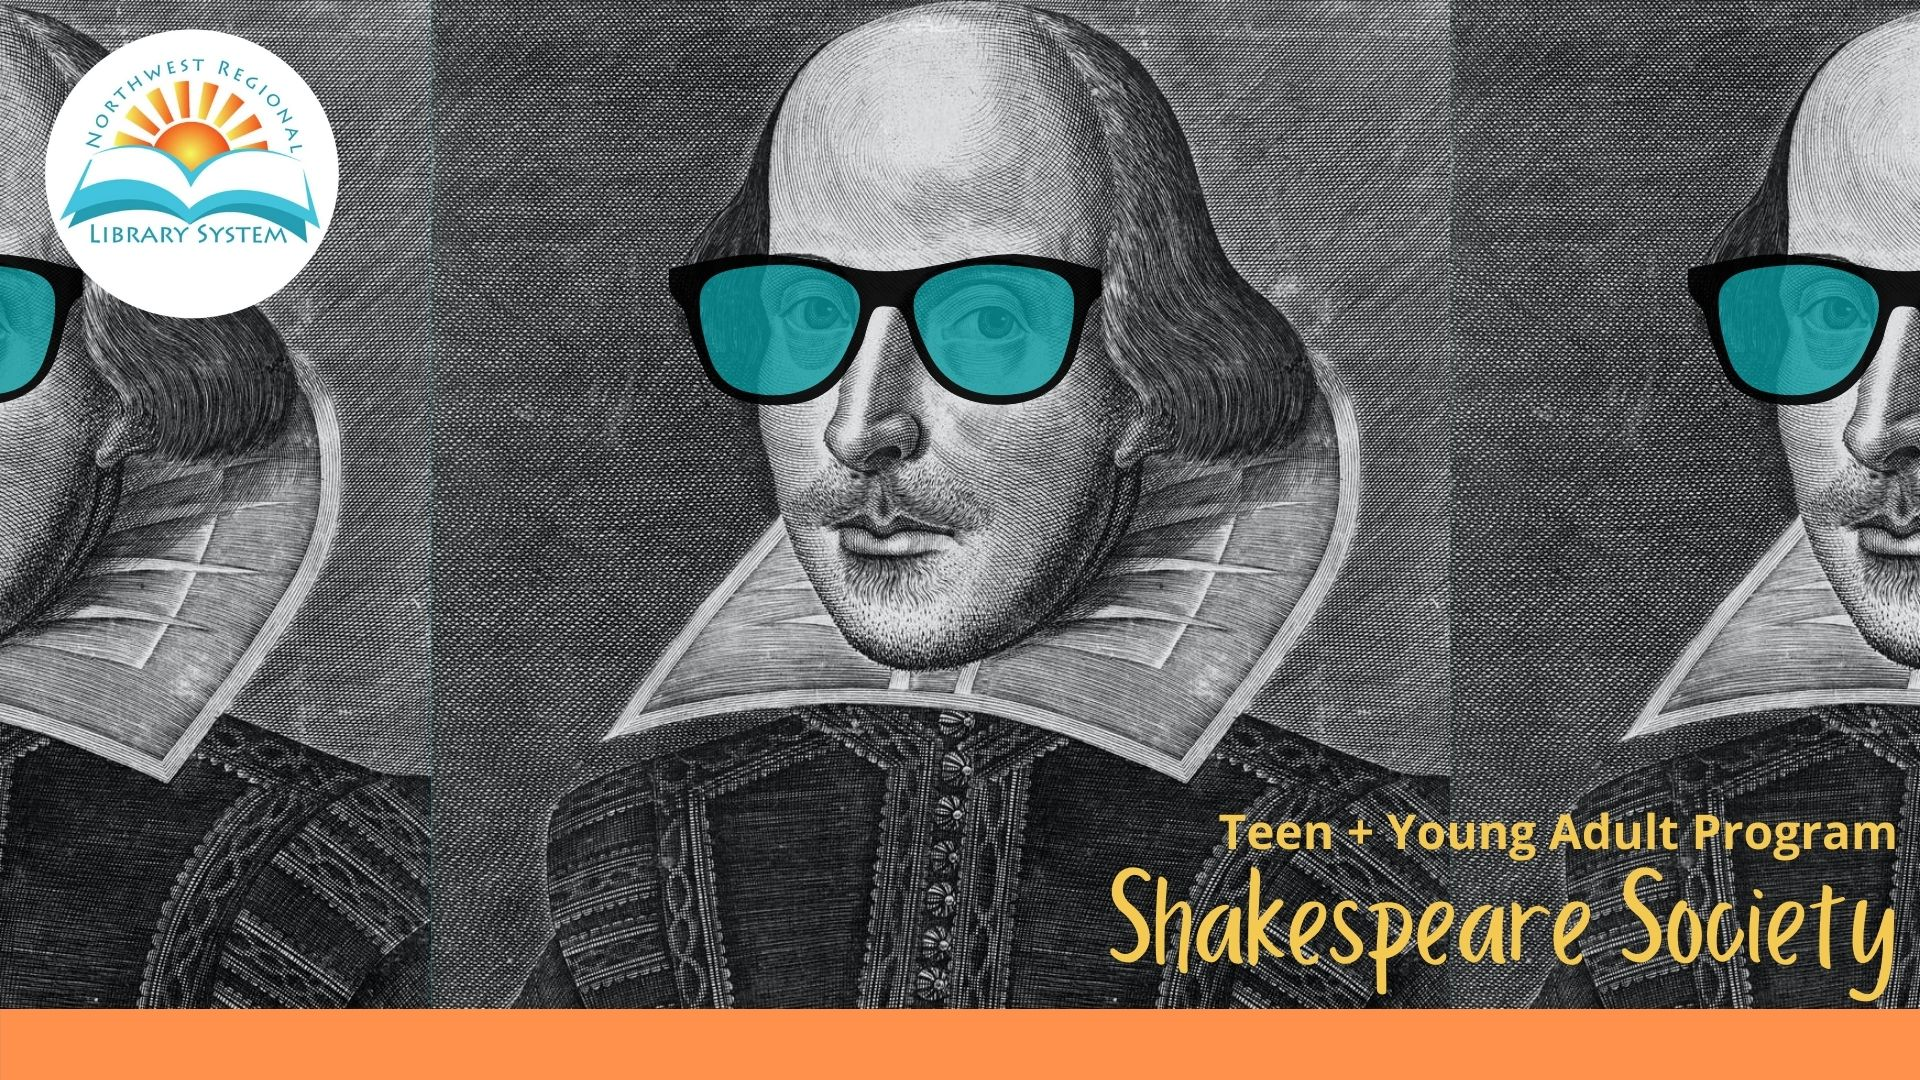 Image of William Shakespeare wearing sunglasses in blue tint